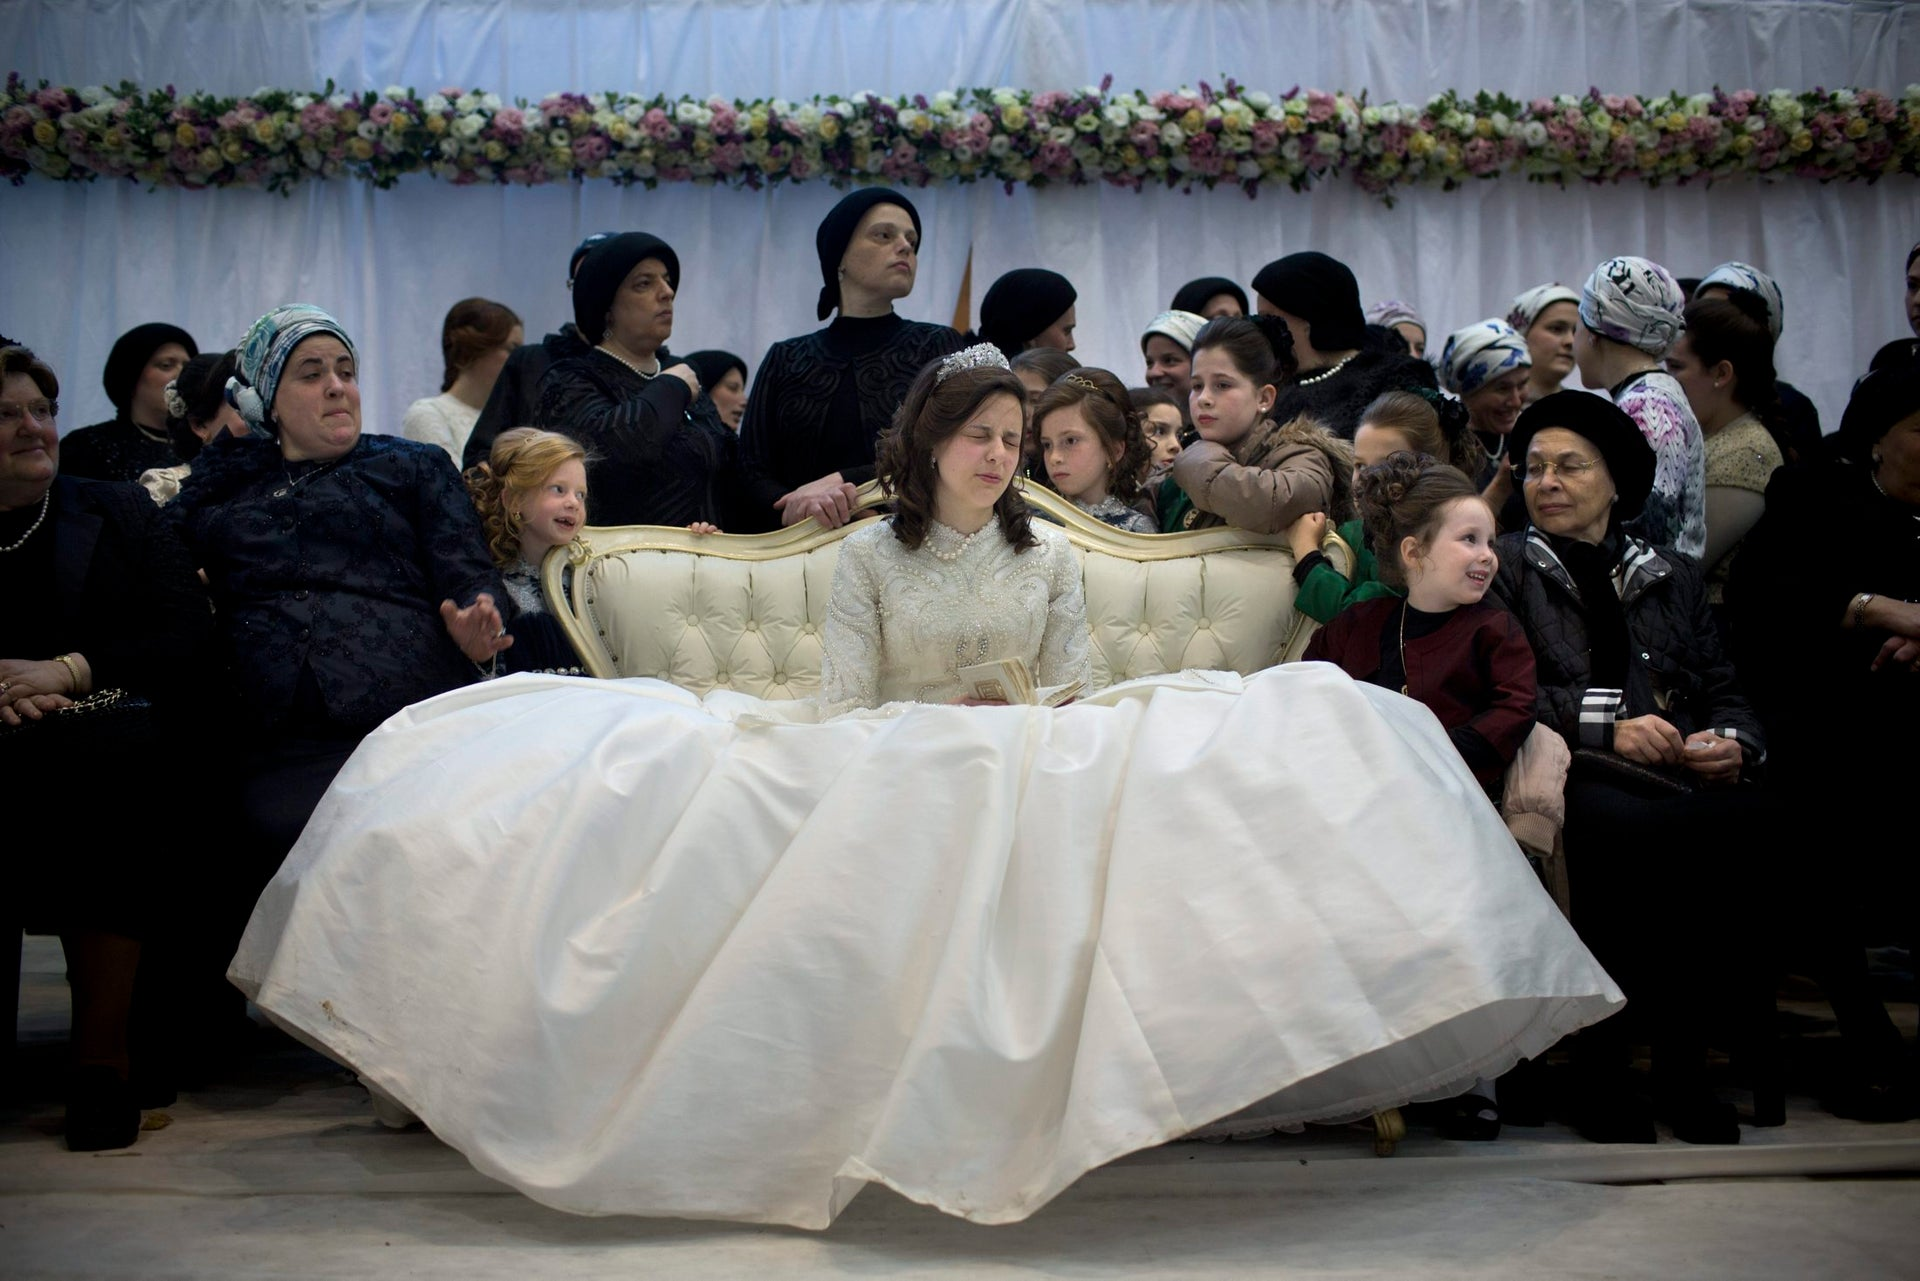 A Jewish bride sits with family members in the women's section during her wedding to the grandson of the Rabbi of the Tzanz Hasidic dynasty community, in Netanya, Israel, Tuesday, March 15, 2016.